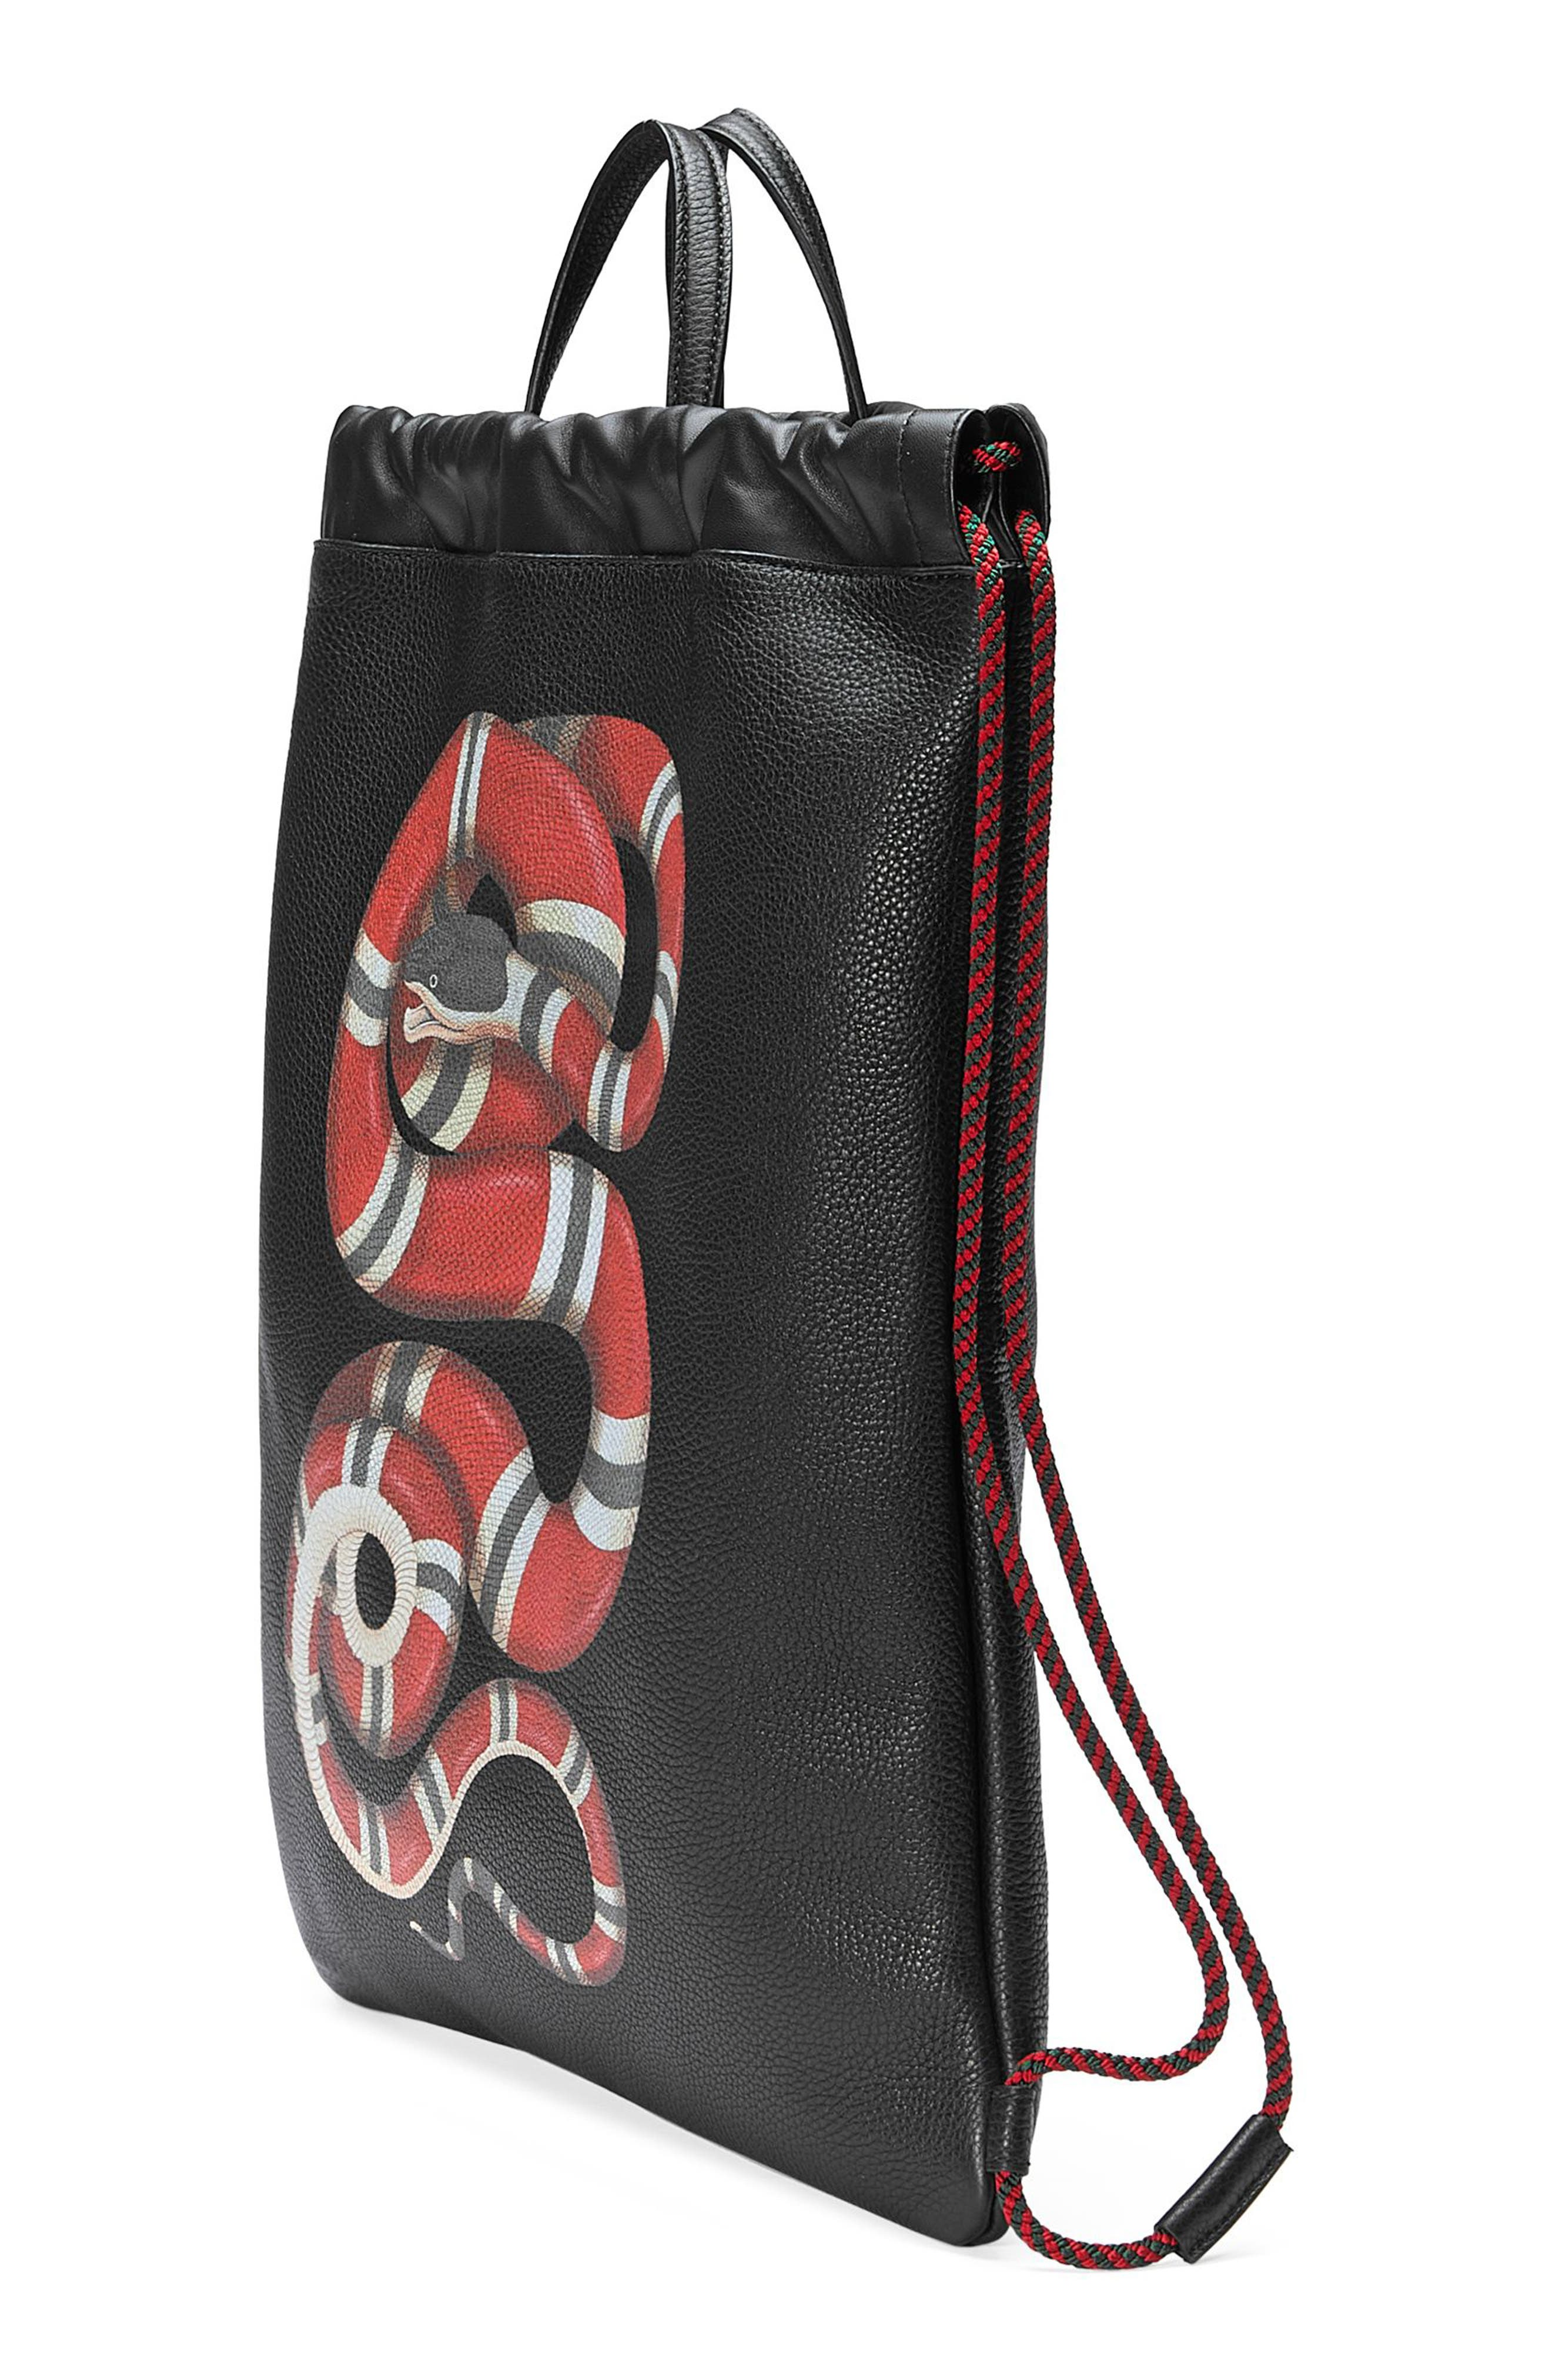 Kingsnake Leather Drawstring Backpack,                             Alternate thumbnail 4, color,                             BLACK